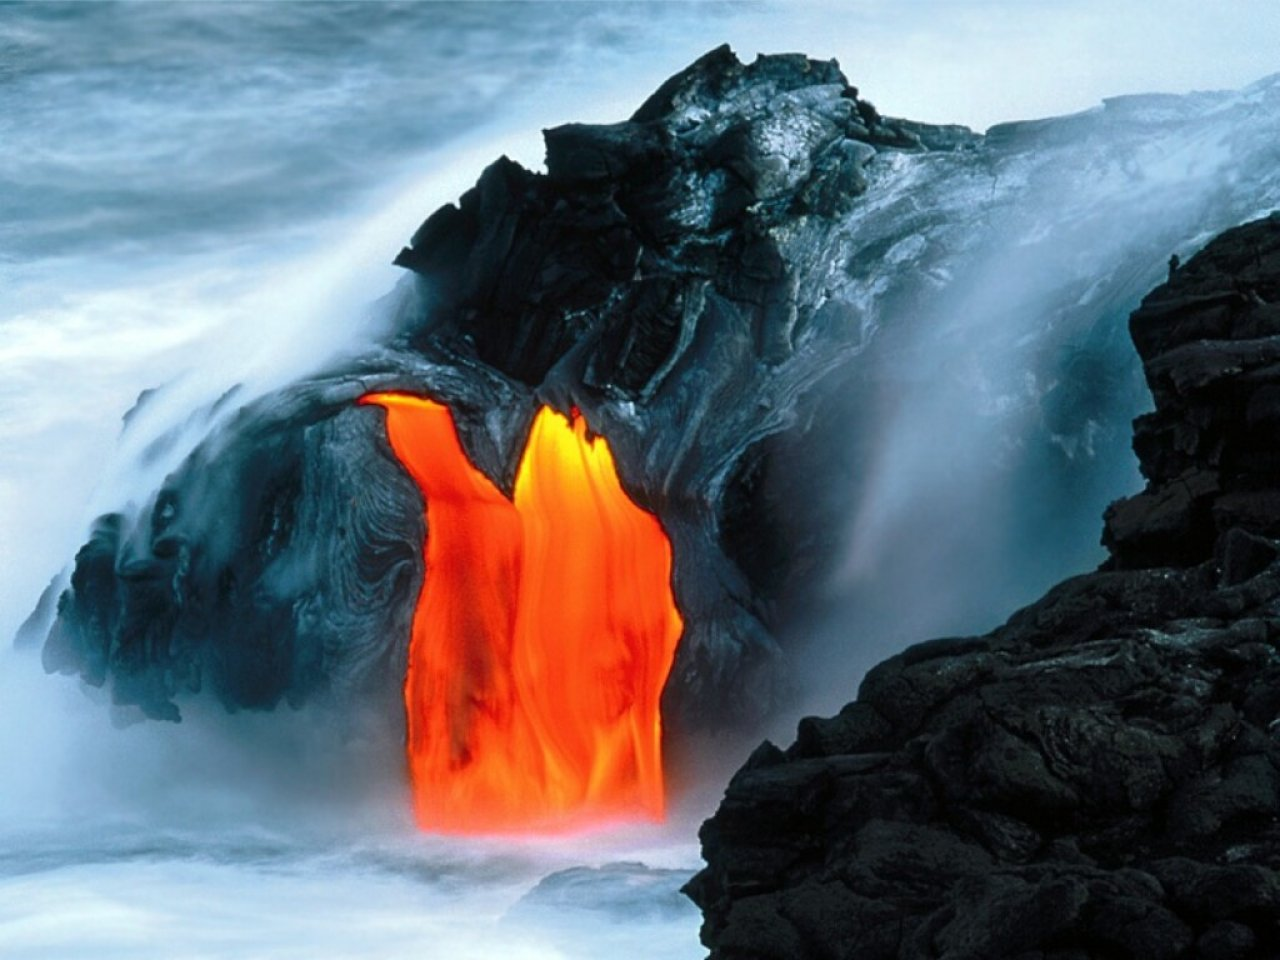 Big Island Volcano Trip: COOL VOLCANO PICTURES